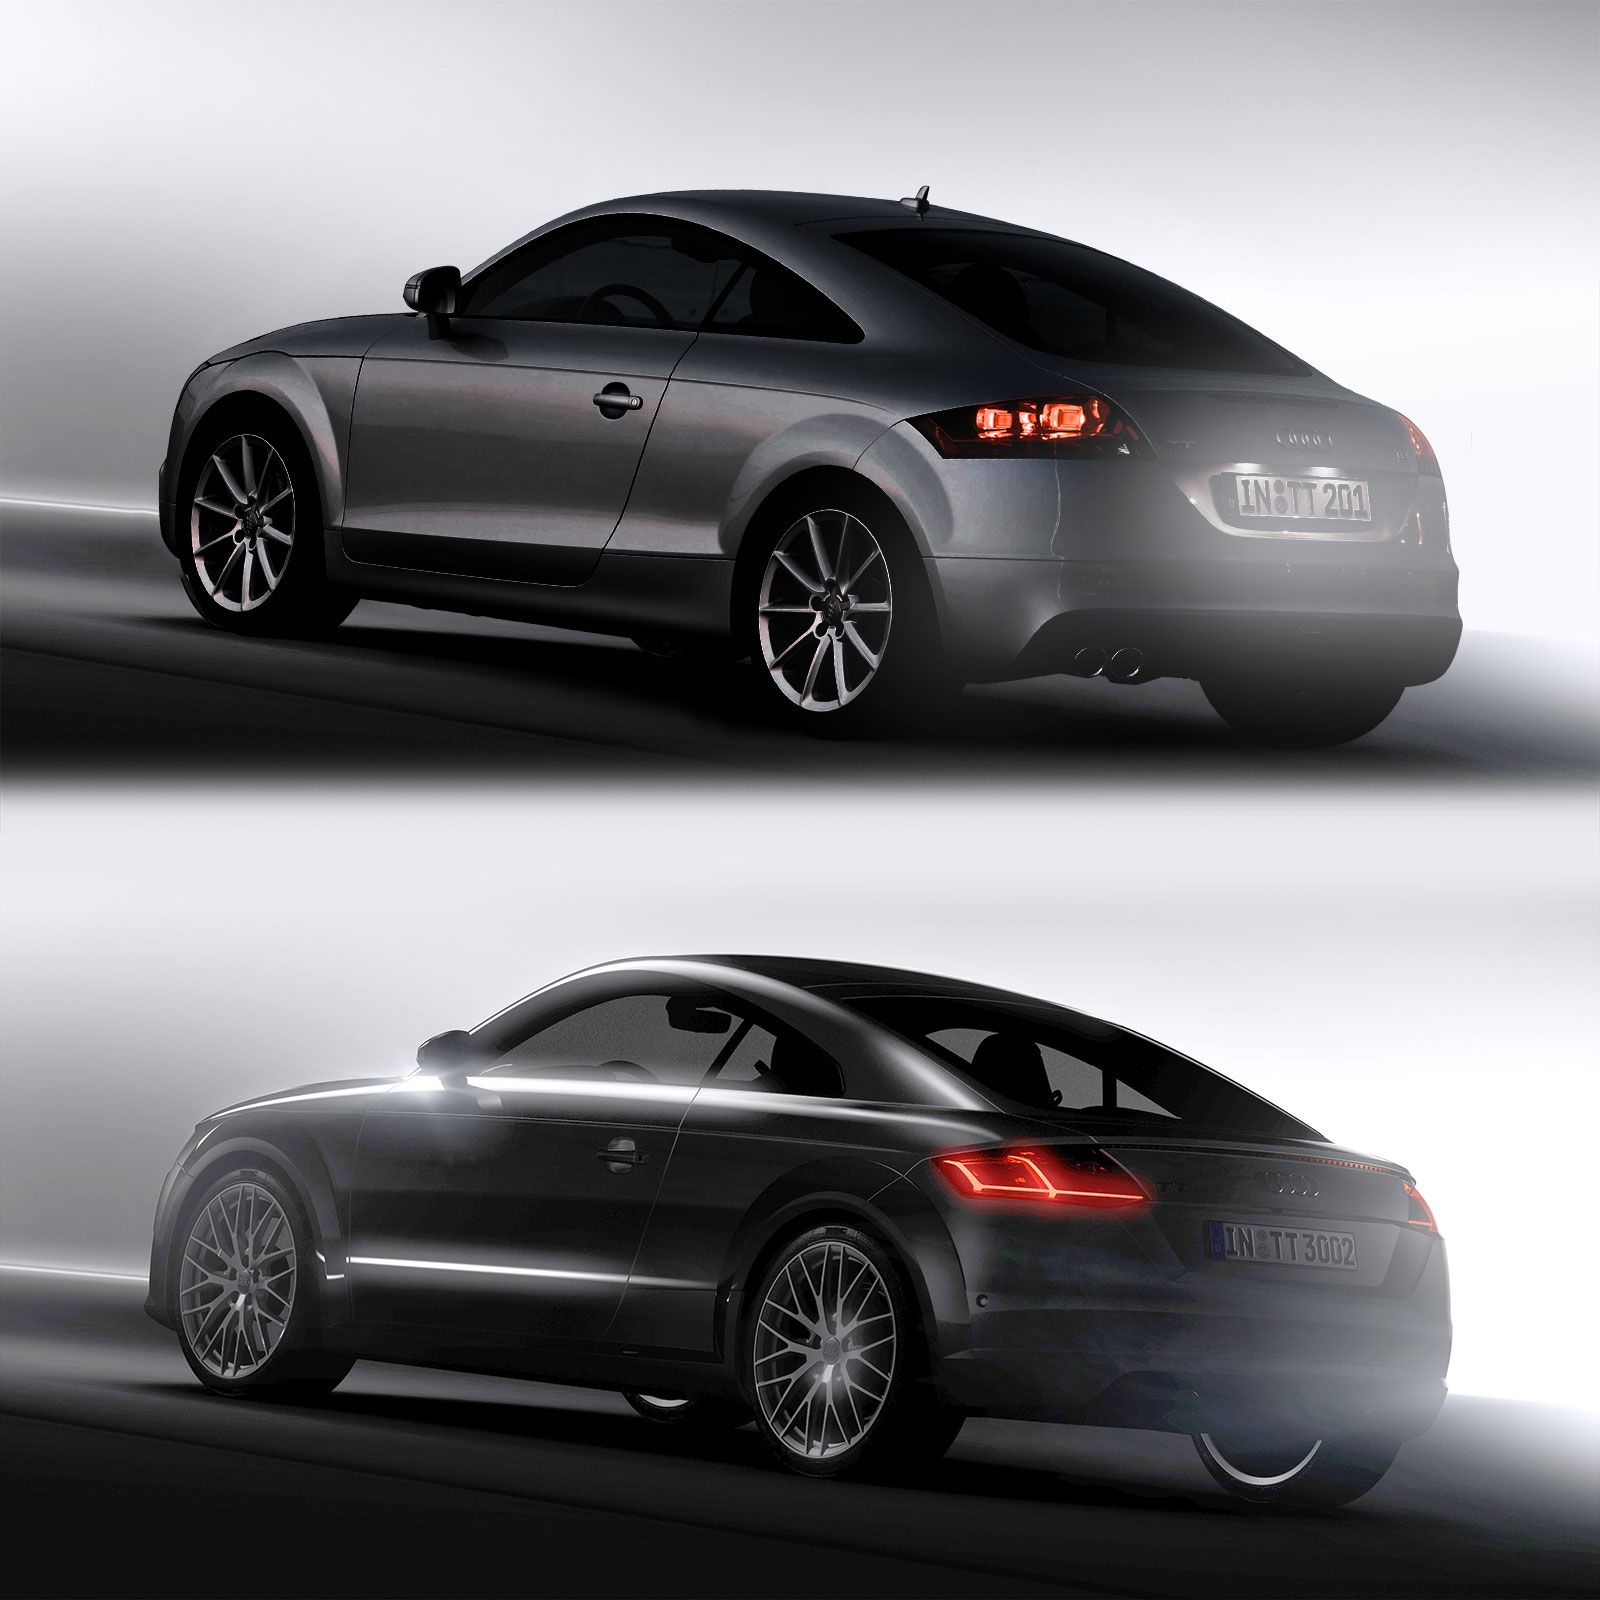 Audi tt 2nd and 3rd generation design comparison